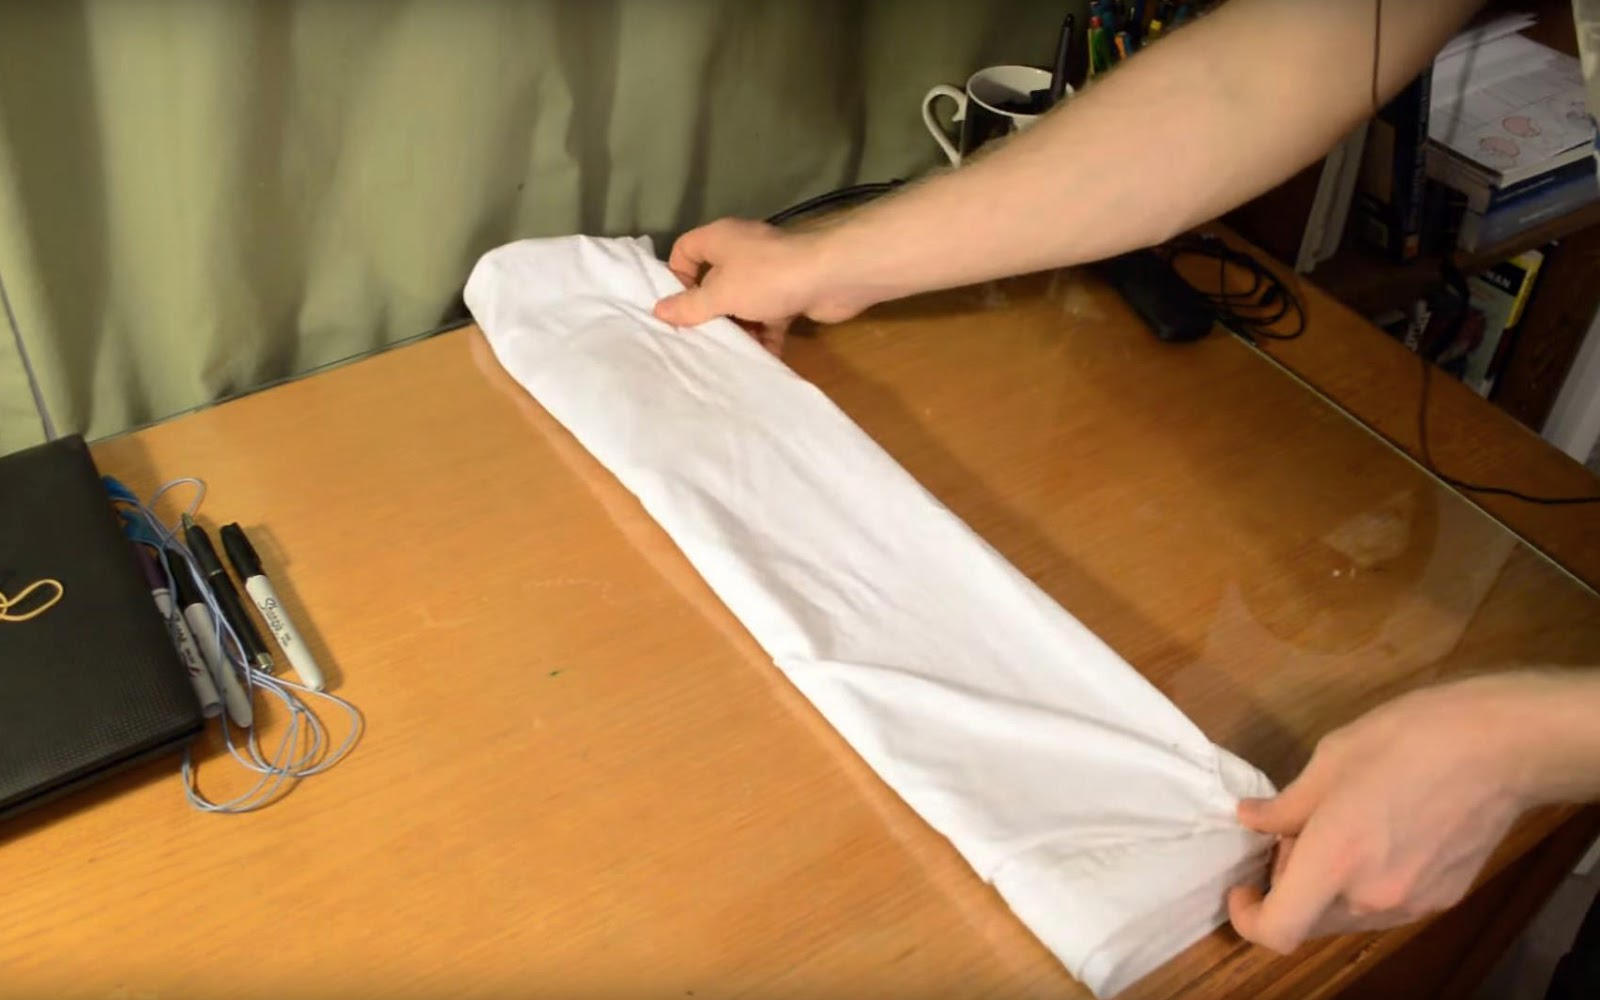 how to pack clothes without wrinkling them